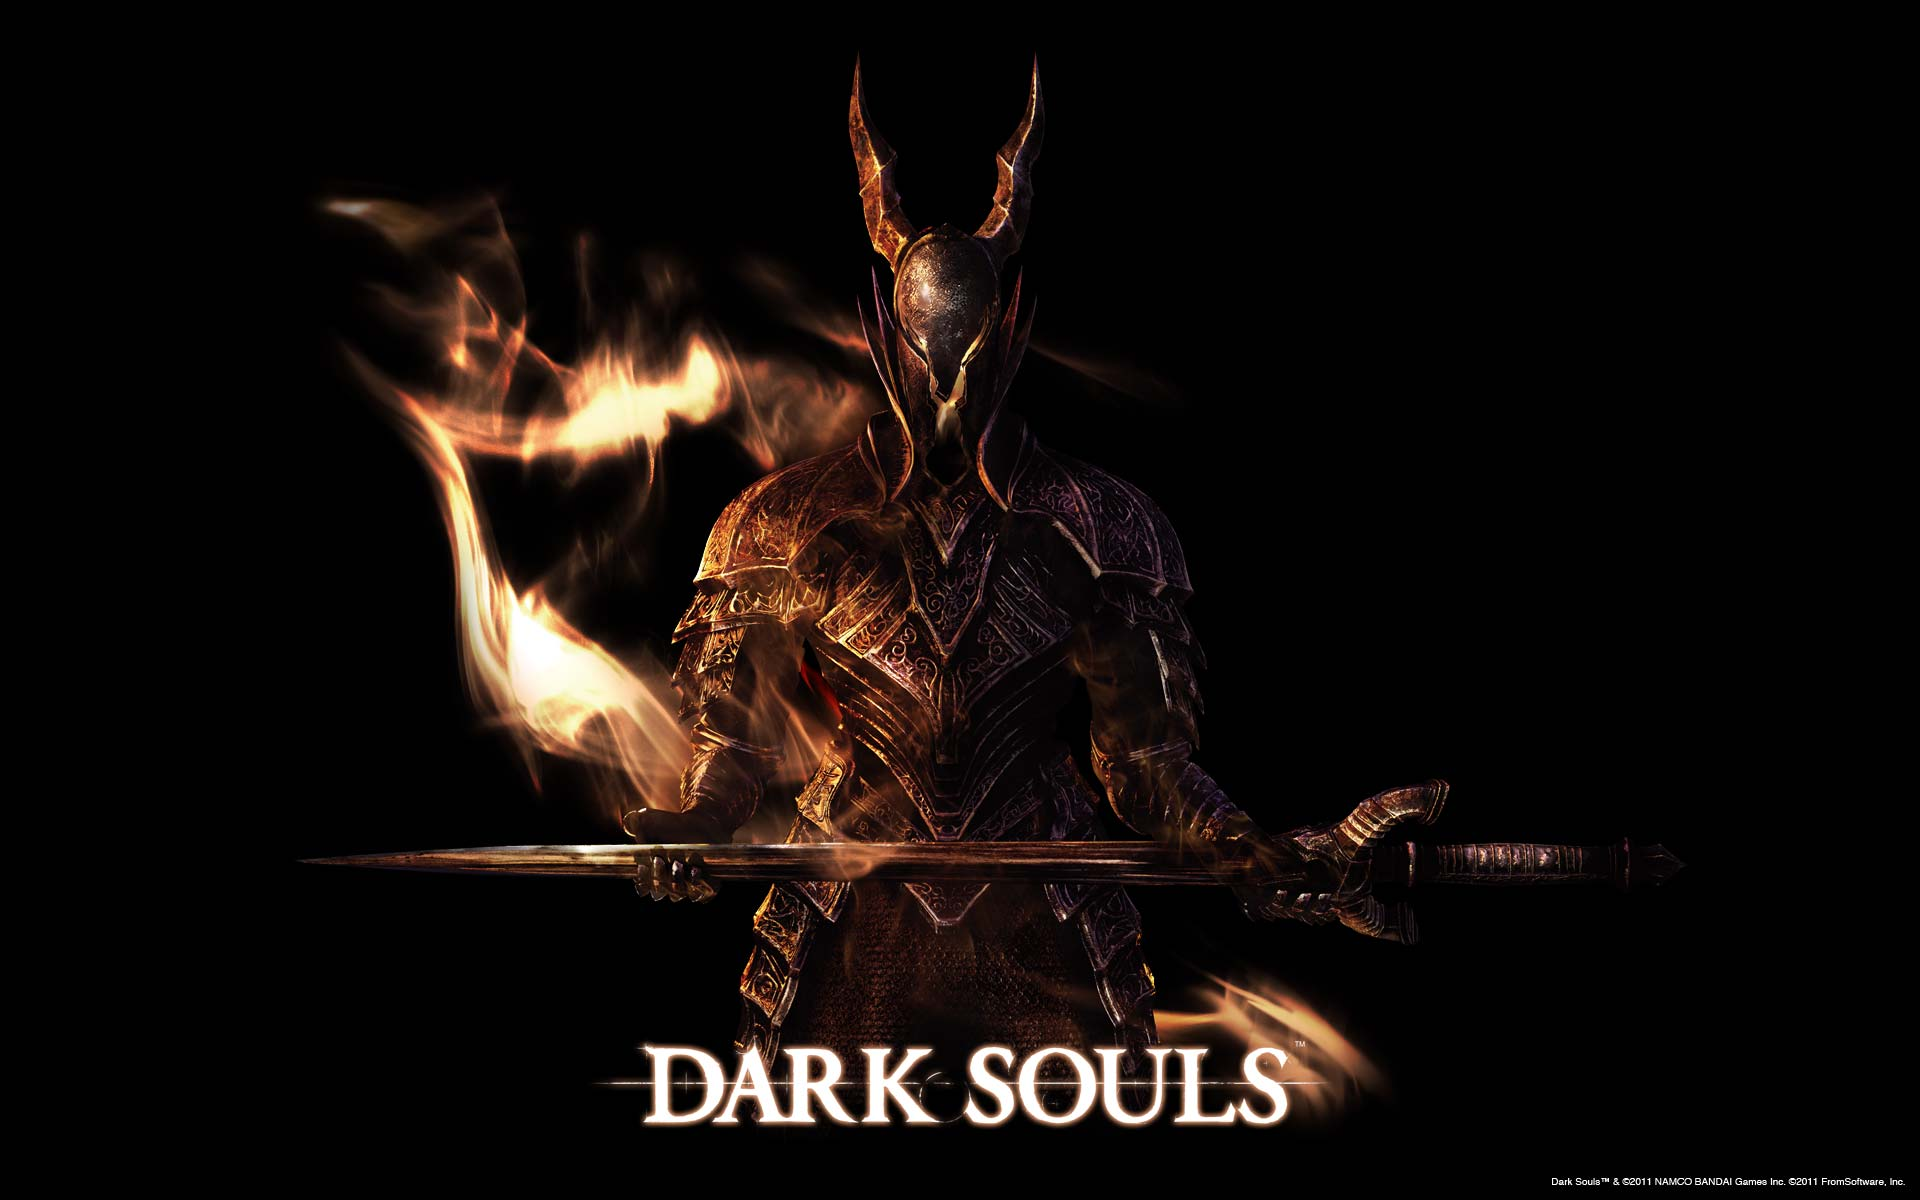 dark souls wallpaper 2560x1440, dark souls phone wallpapers